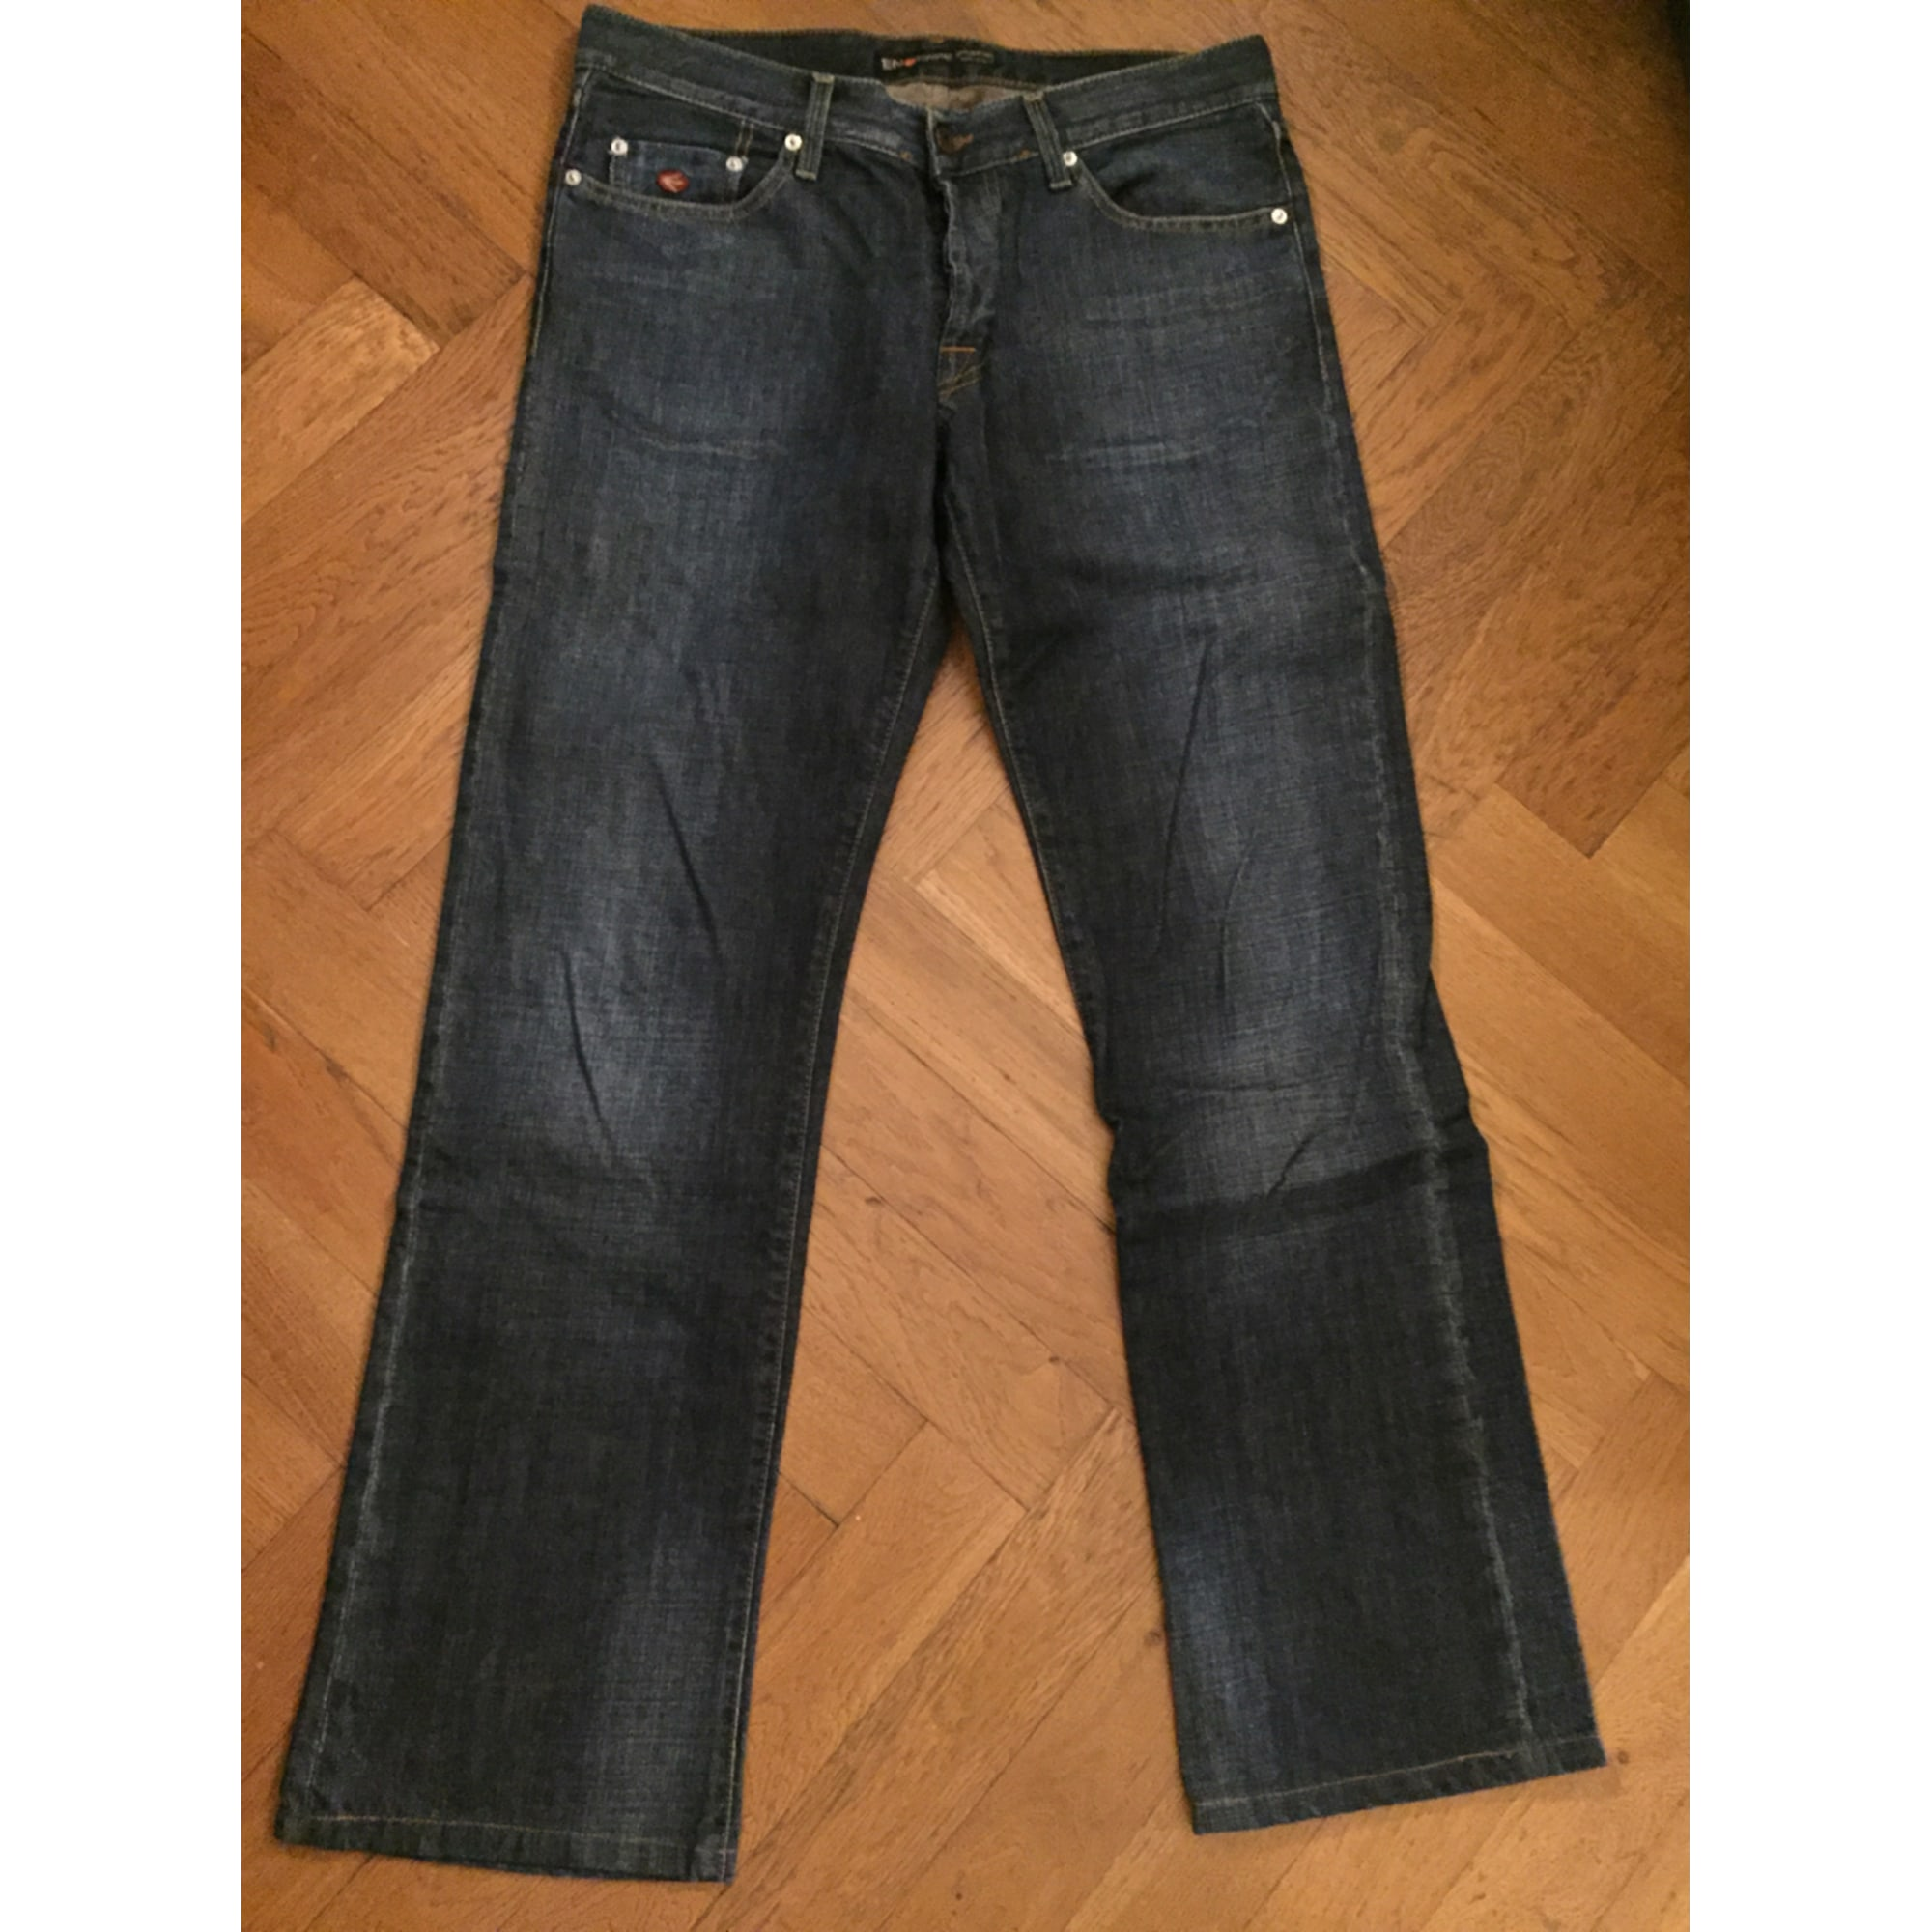 Straight Leg Jeans ENERGIE Blue, navy, turquoise